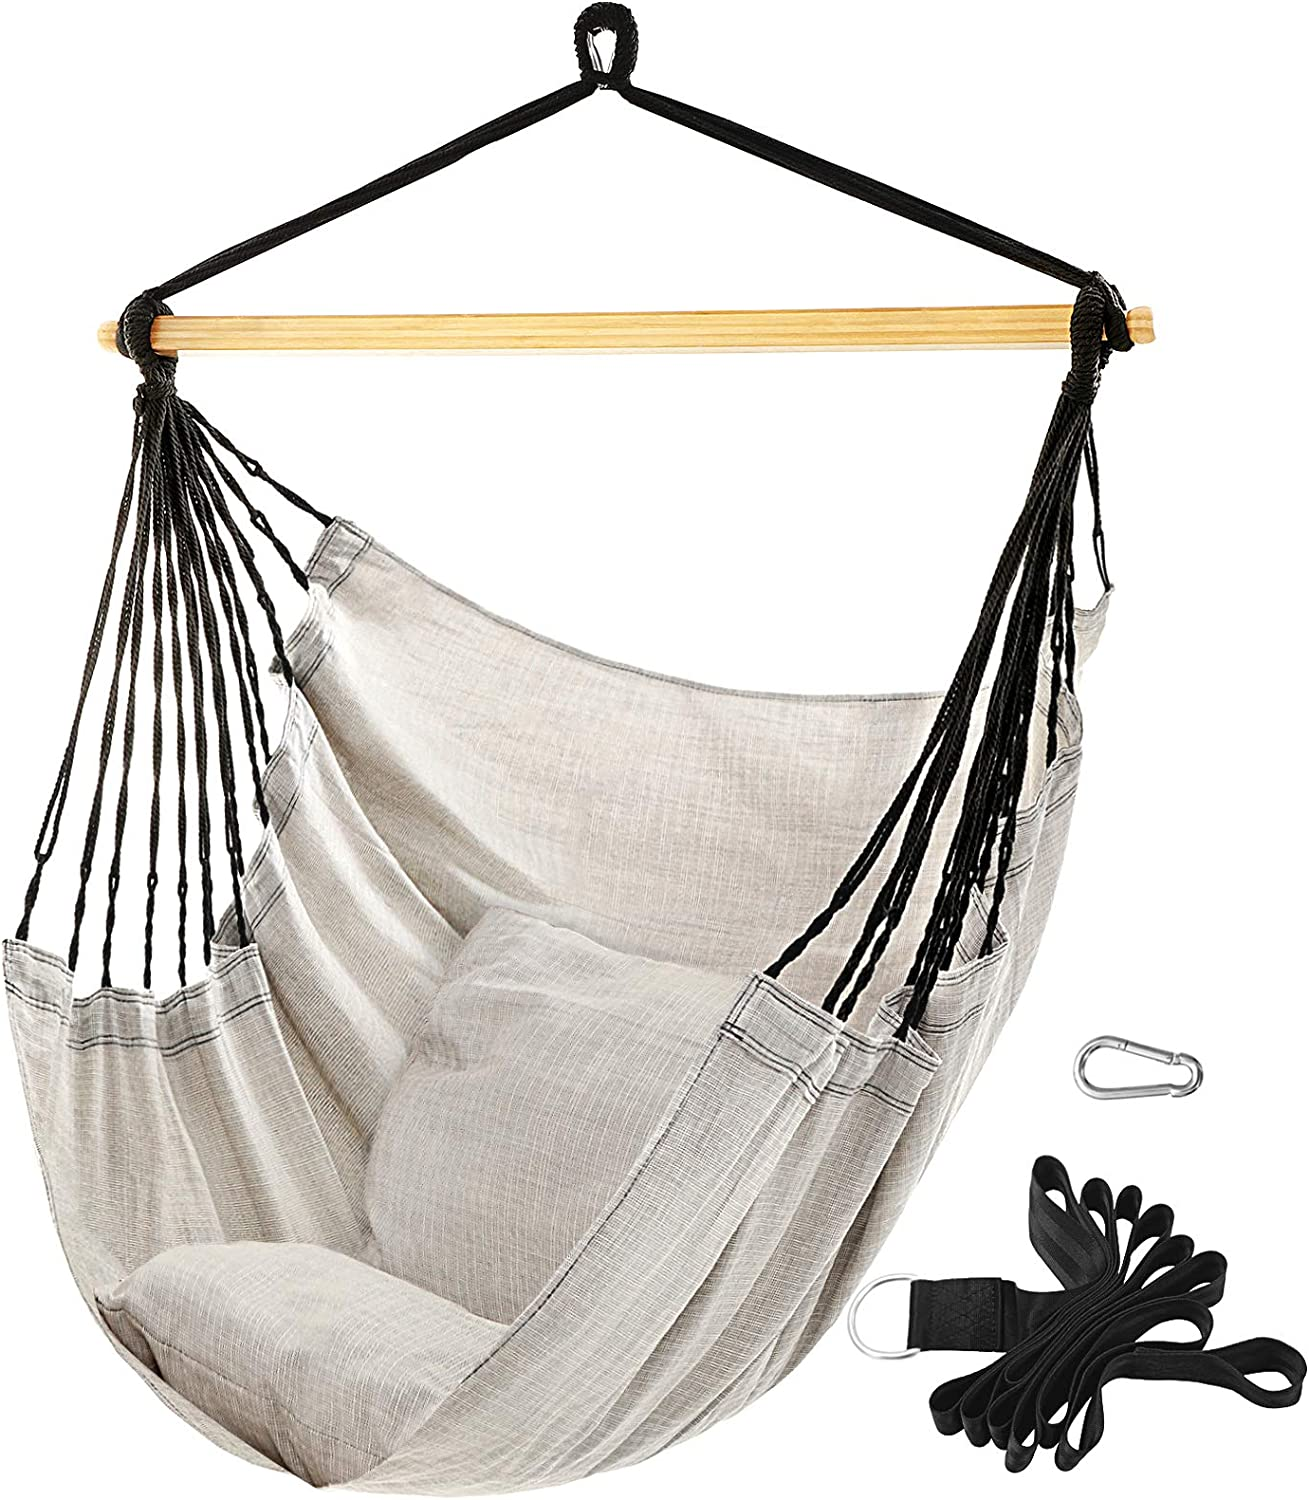 Bamboo Bar Beige Ugdc188m01 Yard Songmics Hammock Chair For Living Room Large Hanging Chair Swing Chair